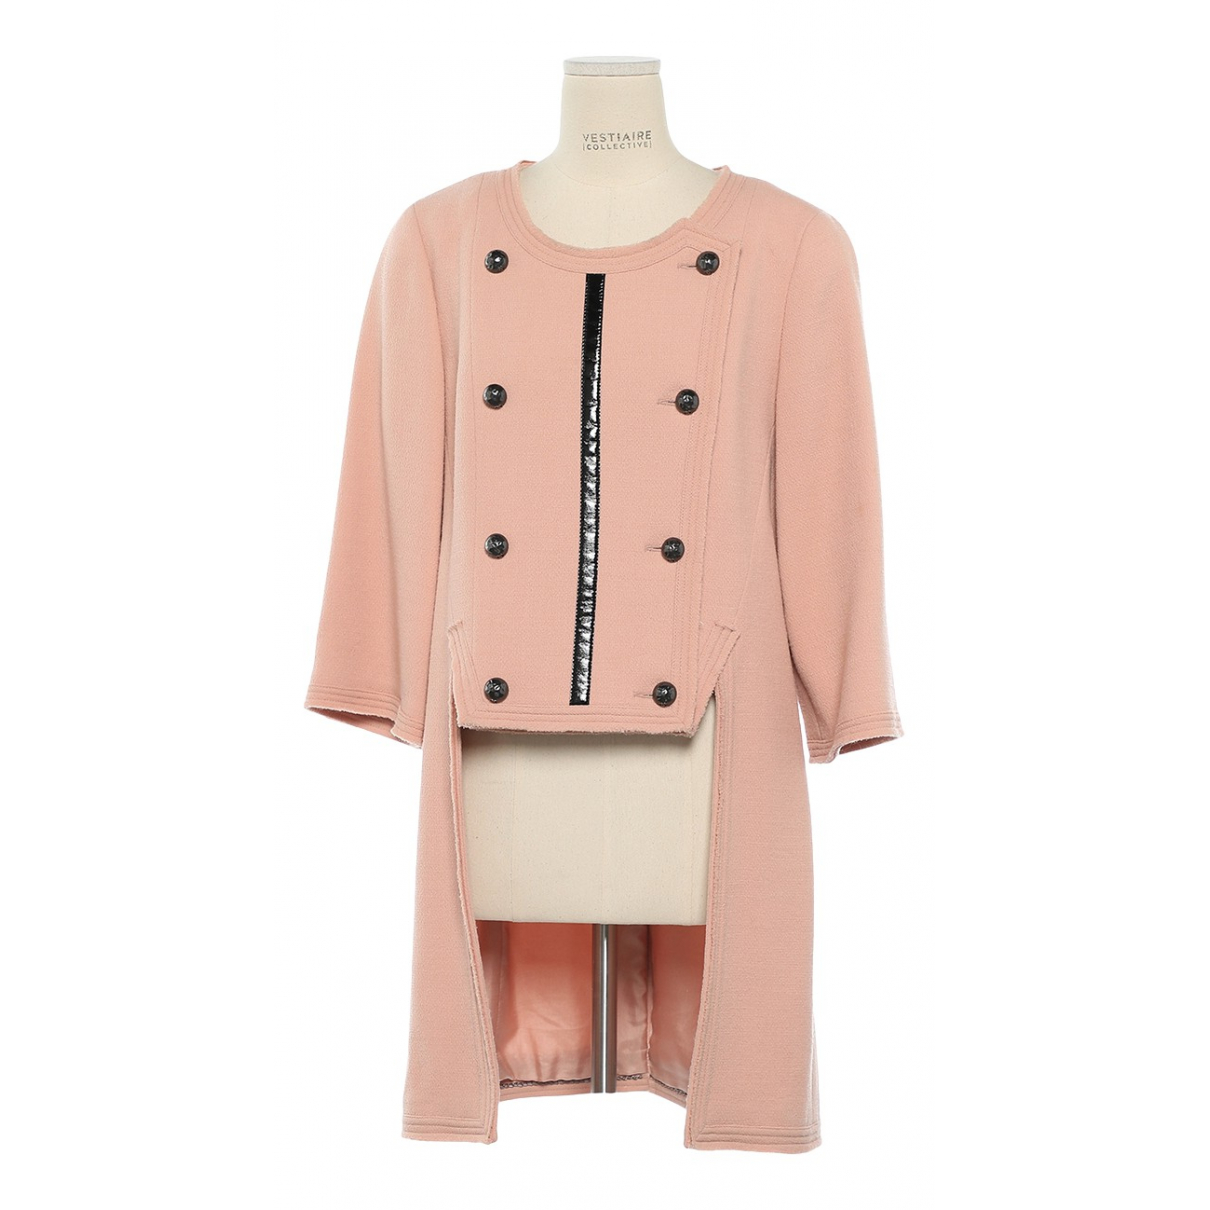 Chanel \N Pink Wool jacket for Women 38 FR